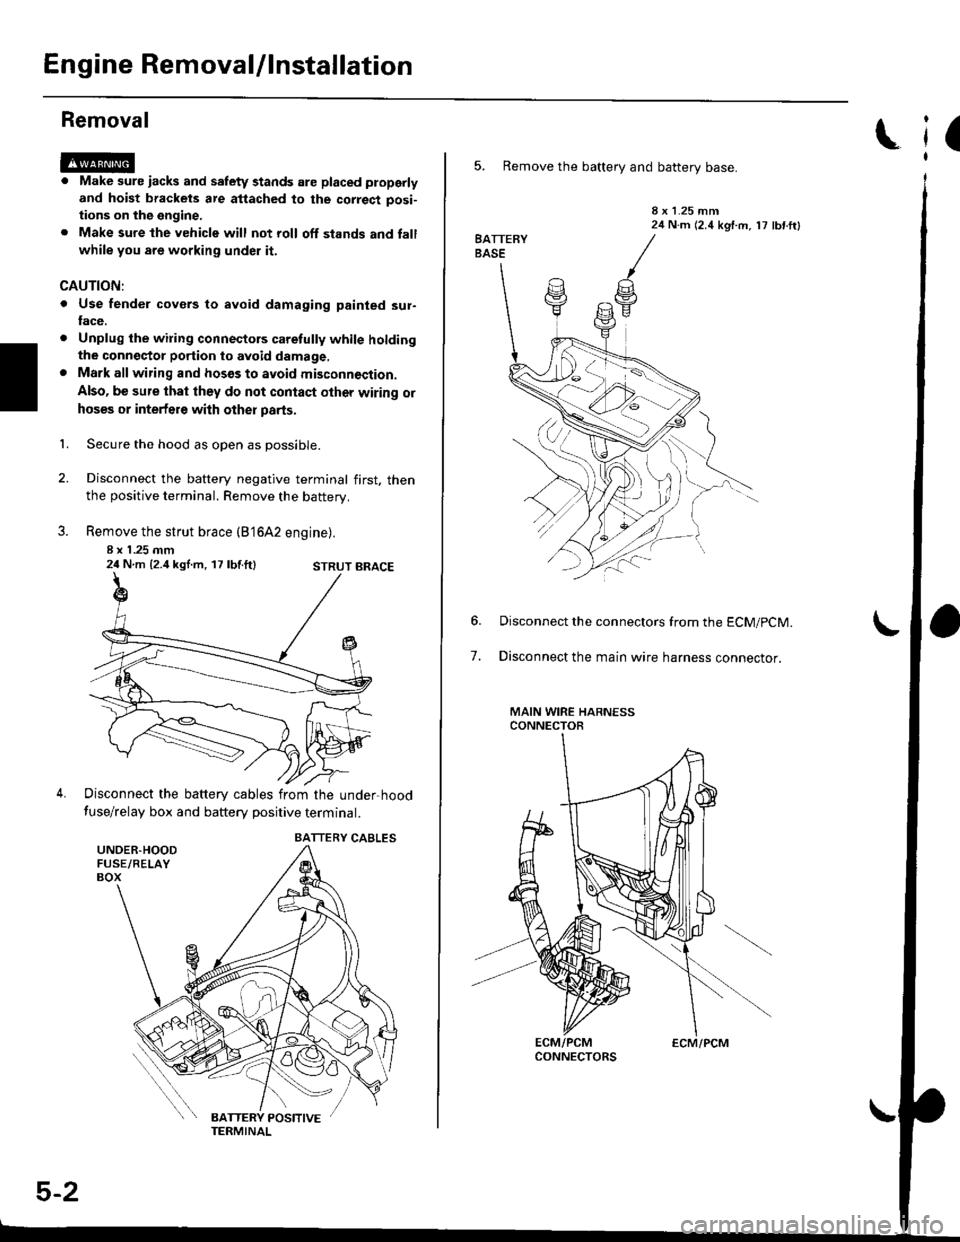 Battery Honda Civic 1996 6g Workshop Manual 2 4 Engine Diagram